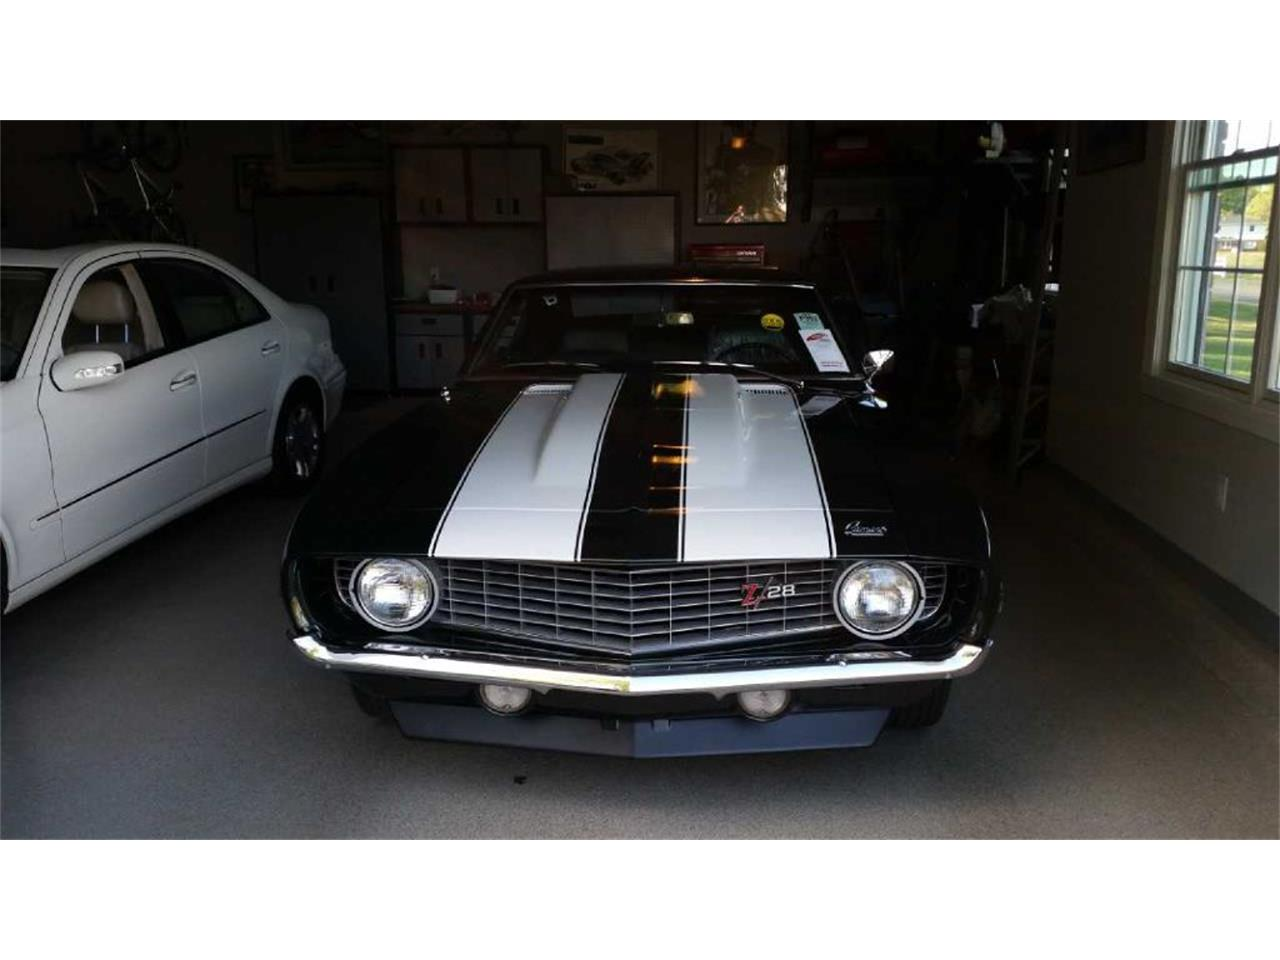 for sale 1969 chevrolet camaro in west pittston, pennsylvania cars - pittston, pa at geebo